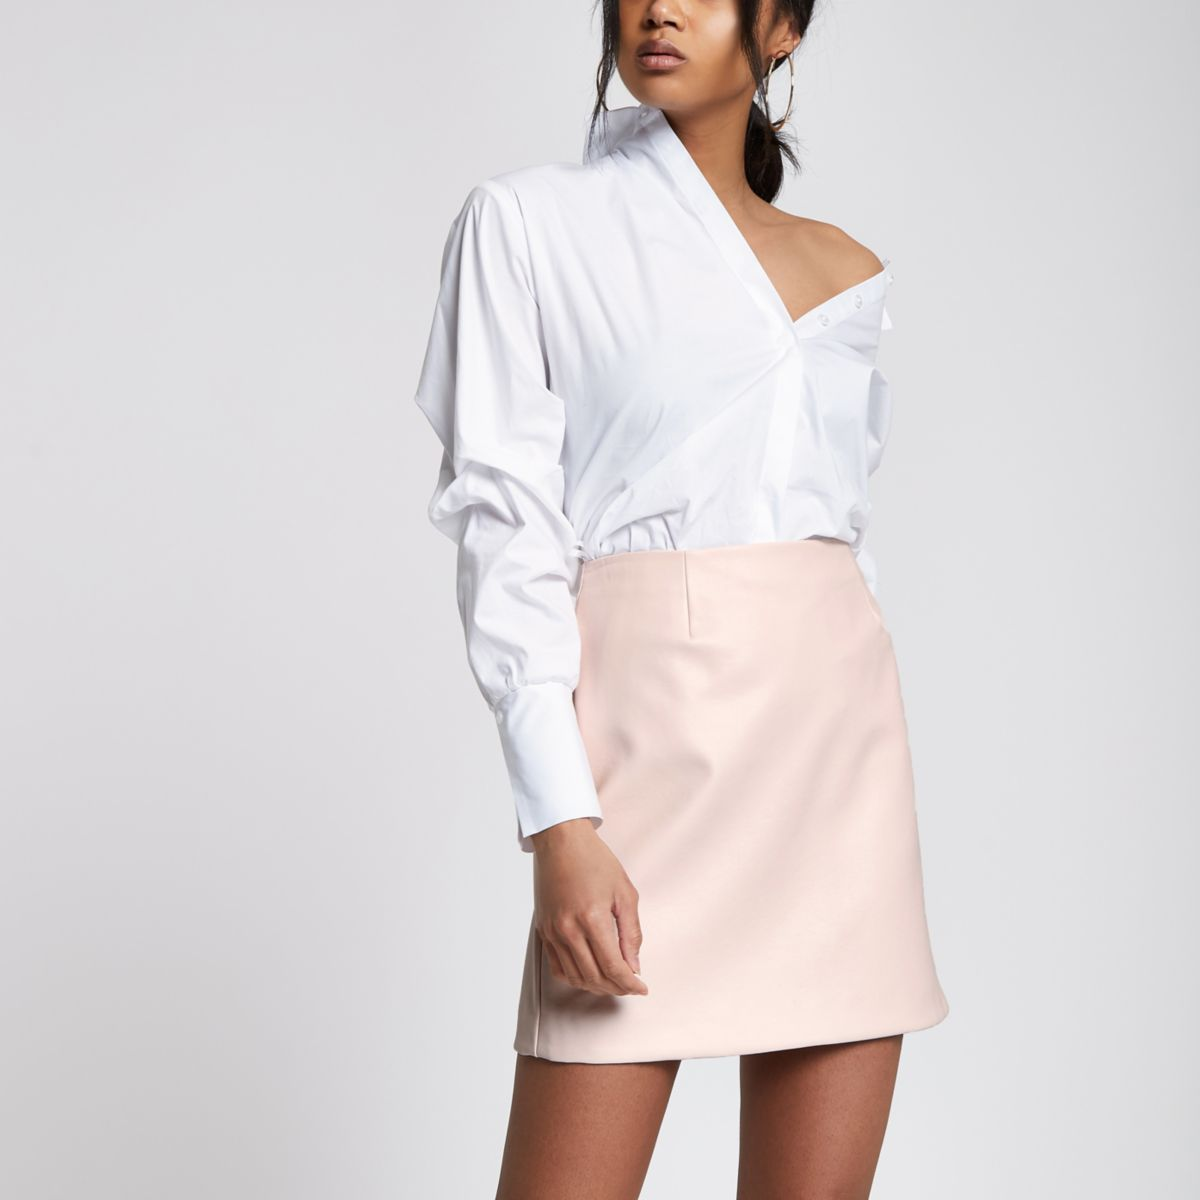 Light pink faux leather skirt